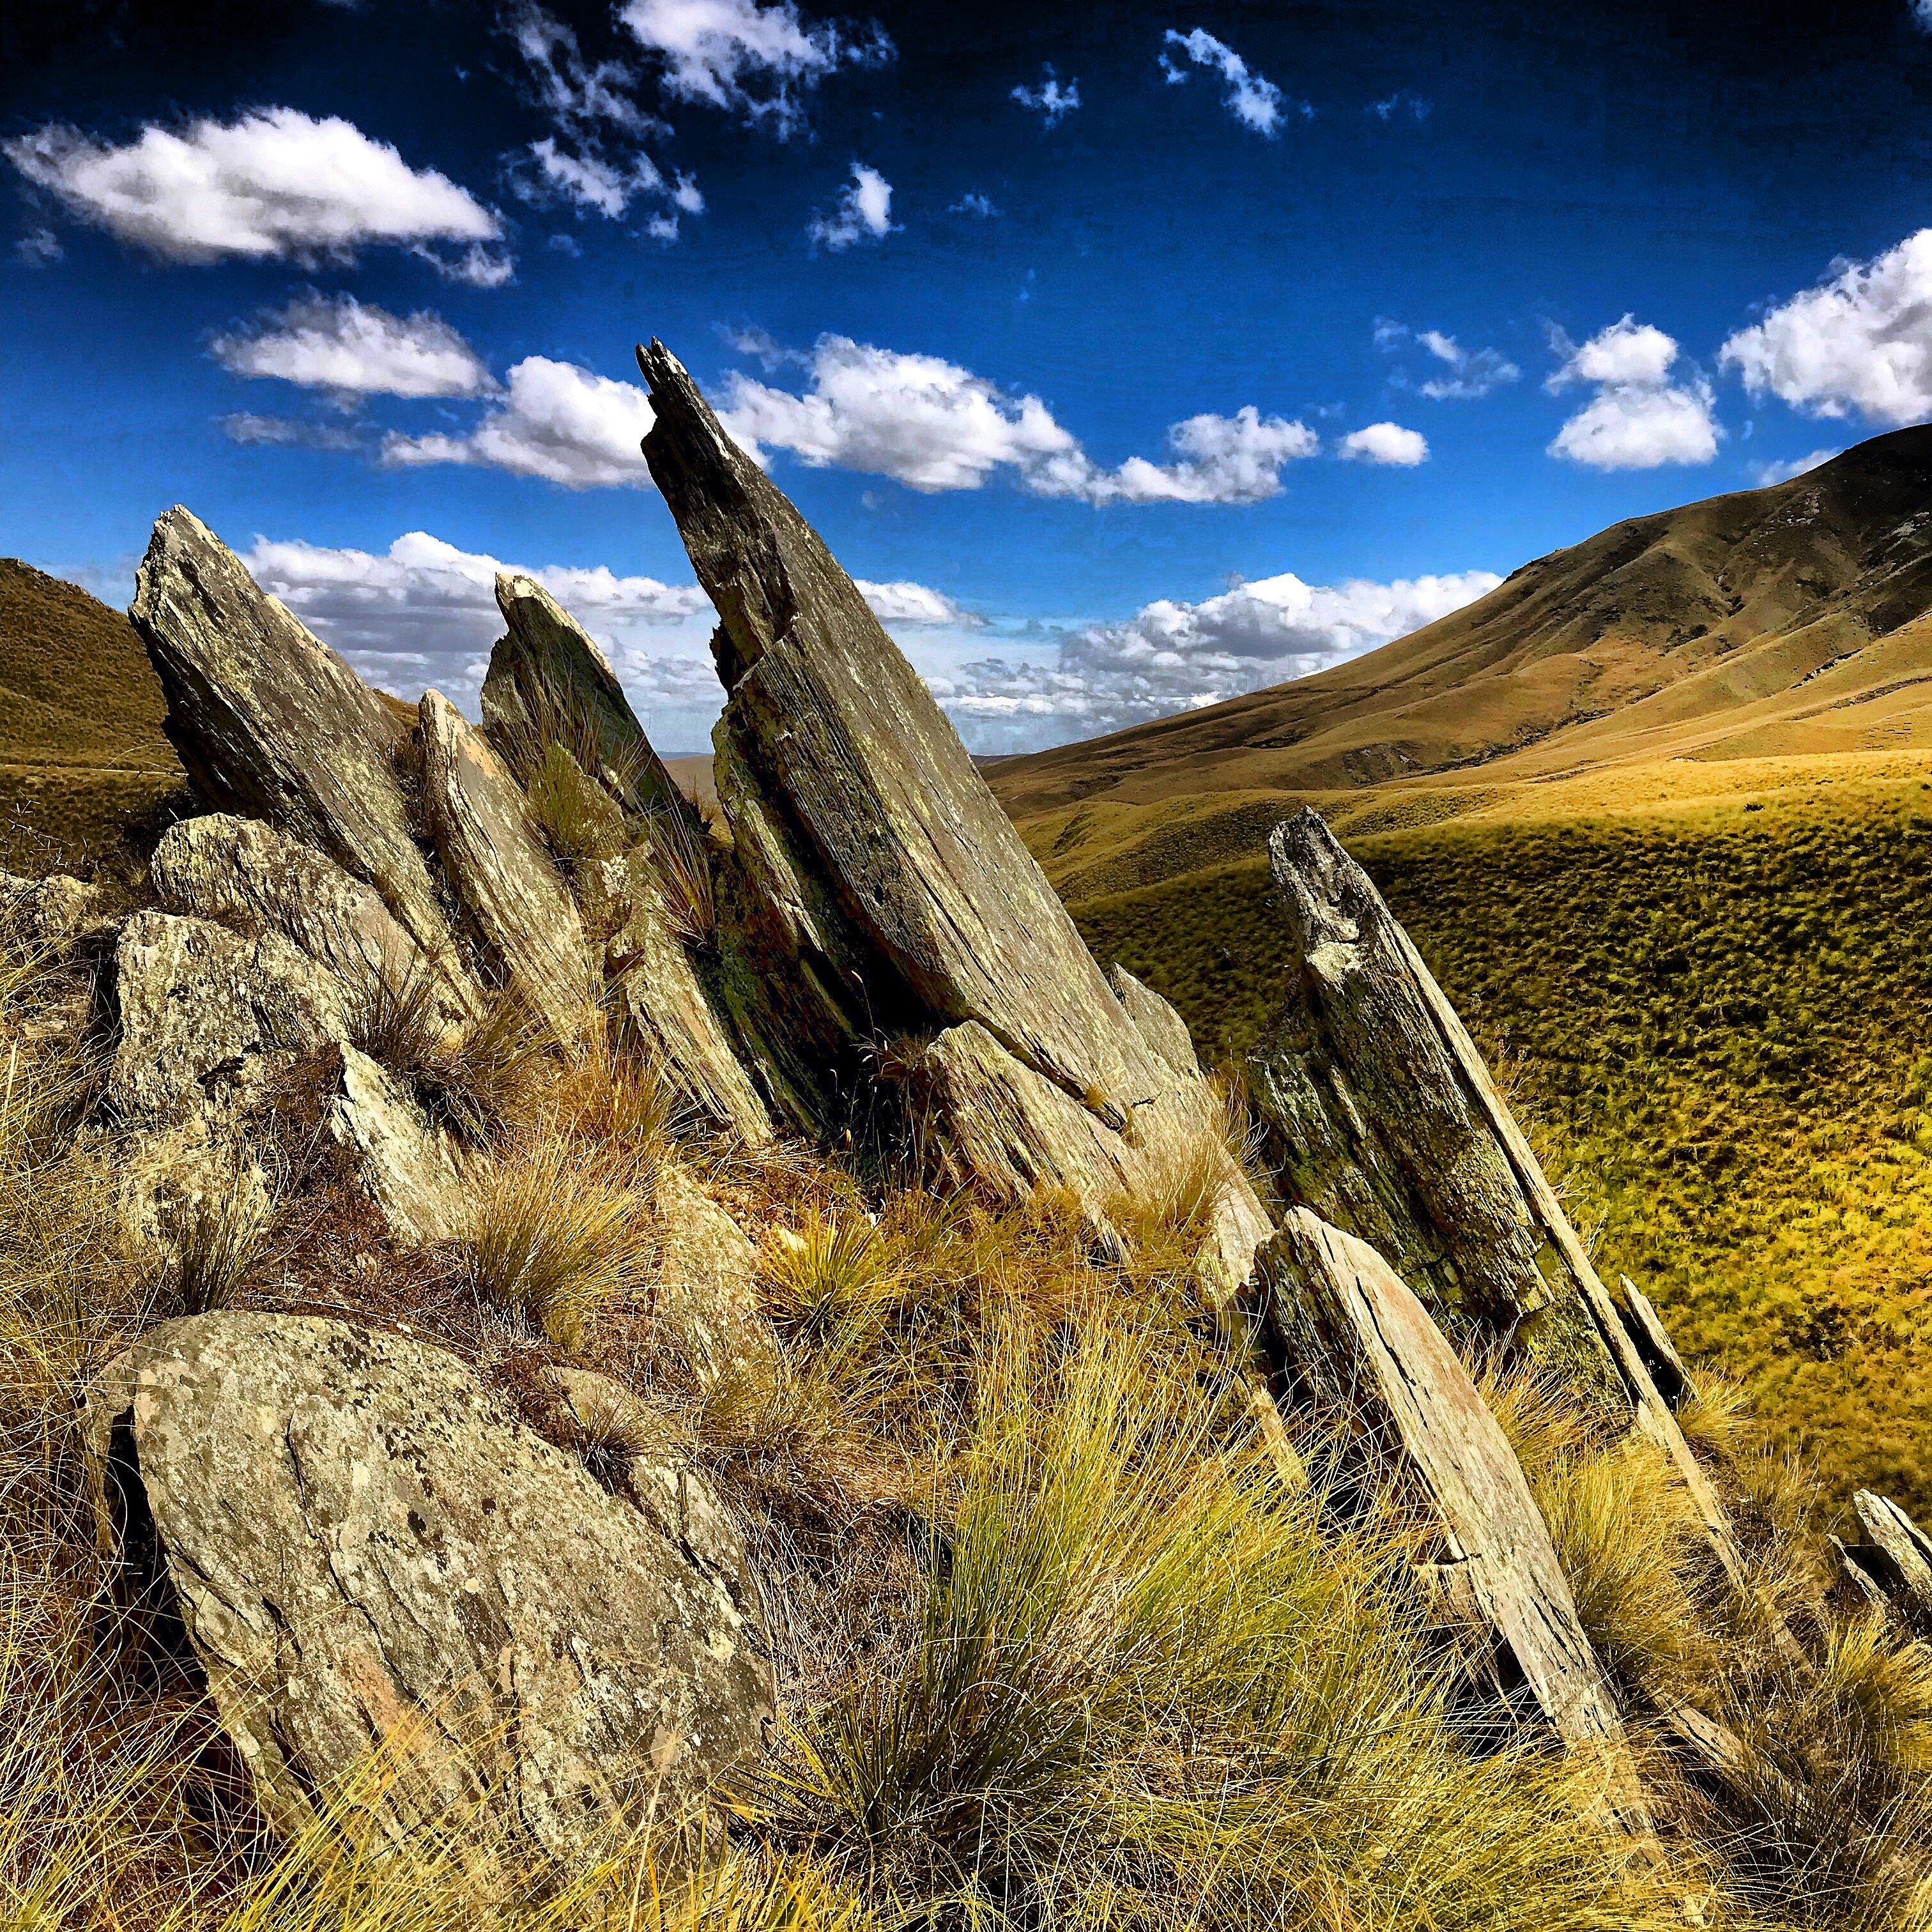 Fangs of rock protrude from the tussocky hillsides of the Danseys Pass on the South Island of New Zealand.